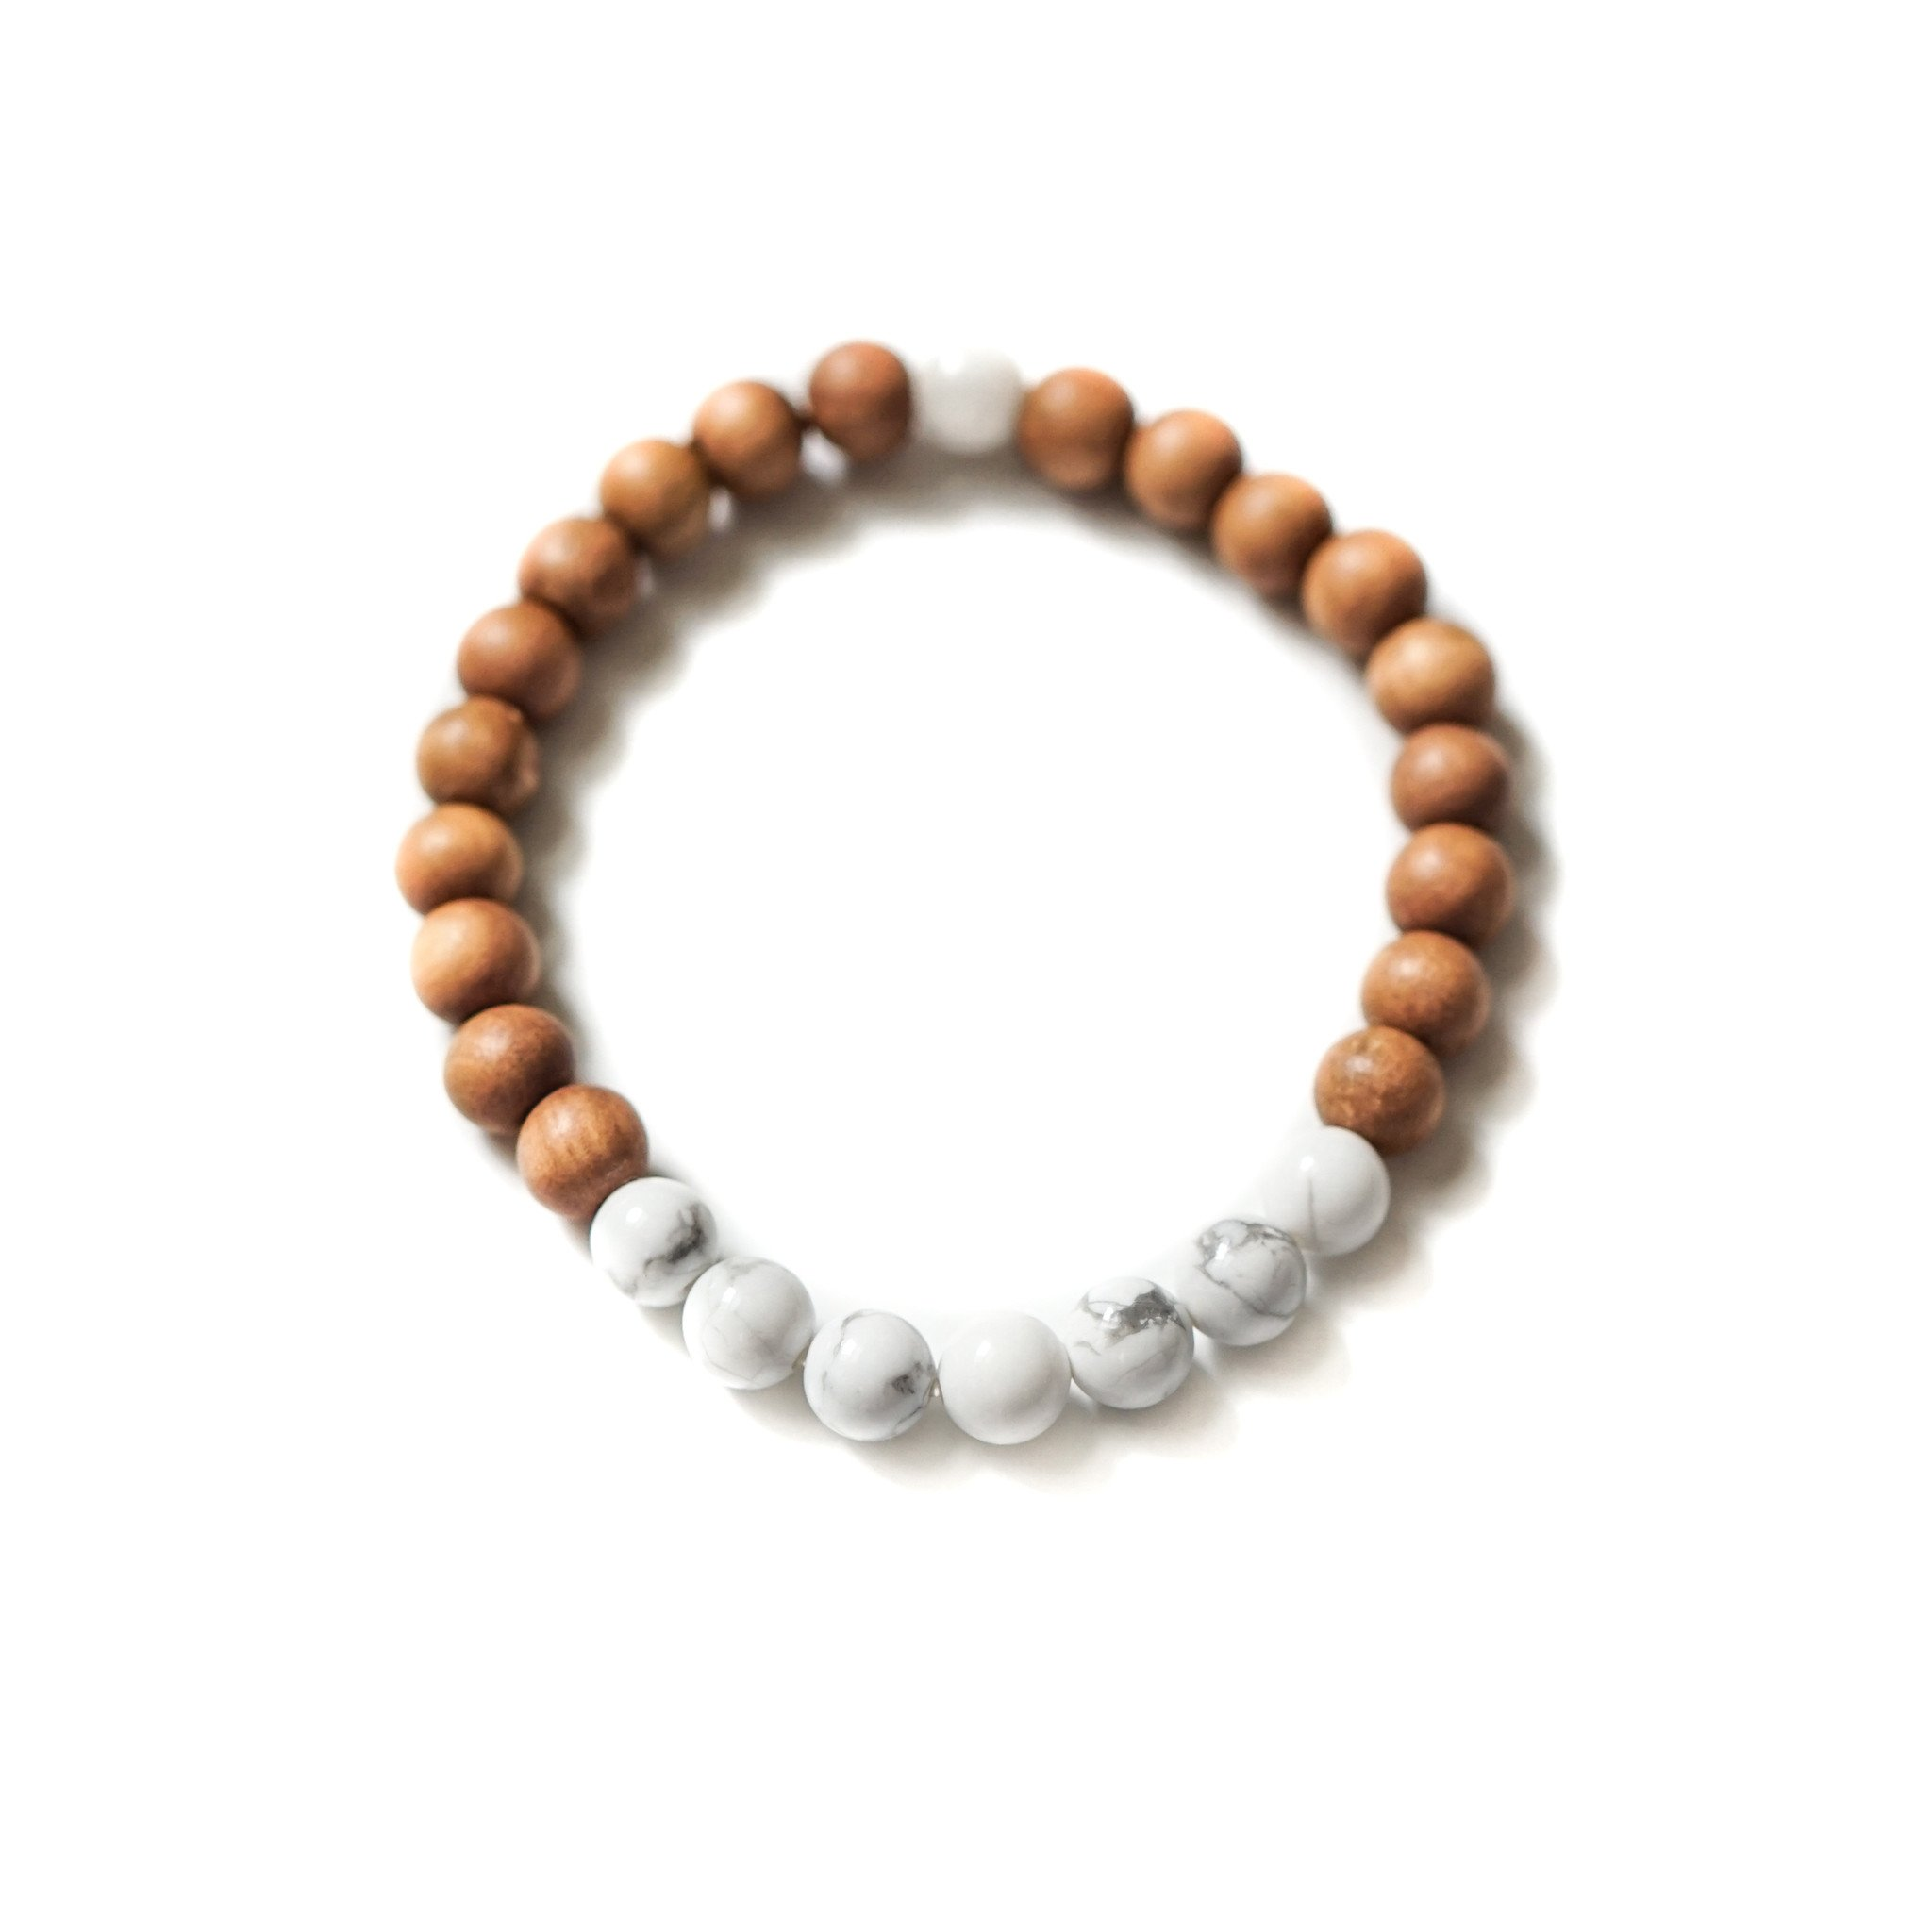 Humanity Unified Transcendence Bracelet, Malas Rwanda, Give back gifts